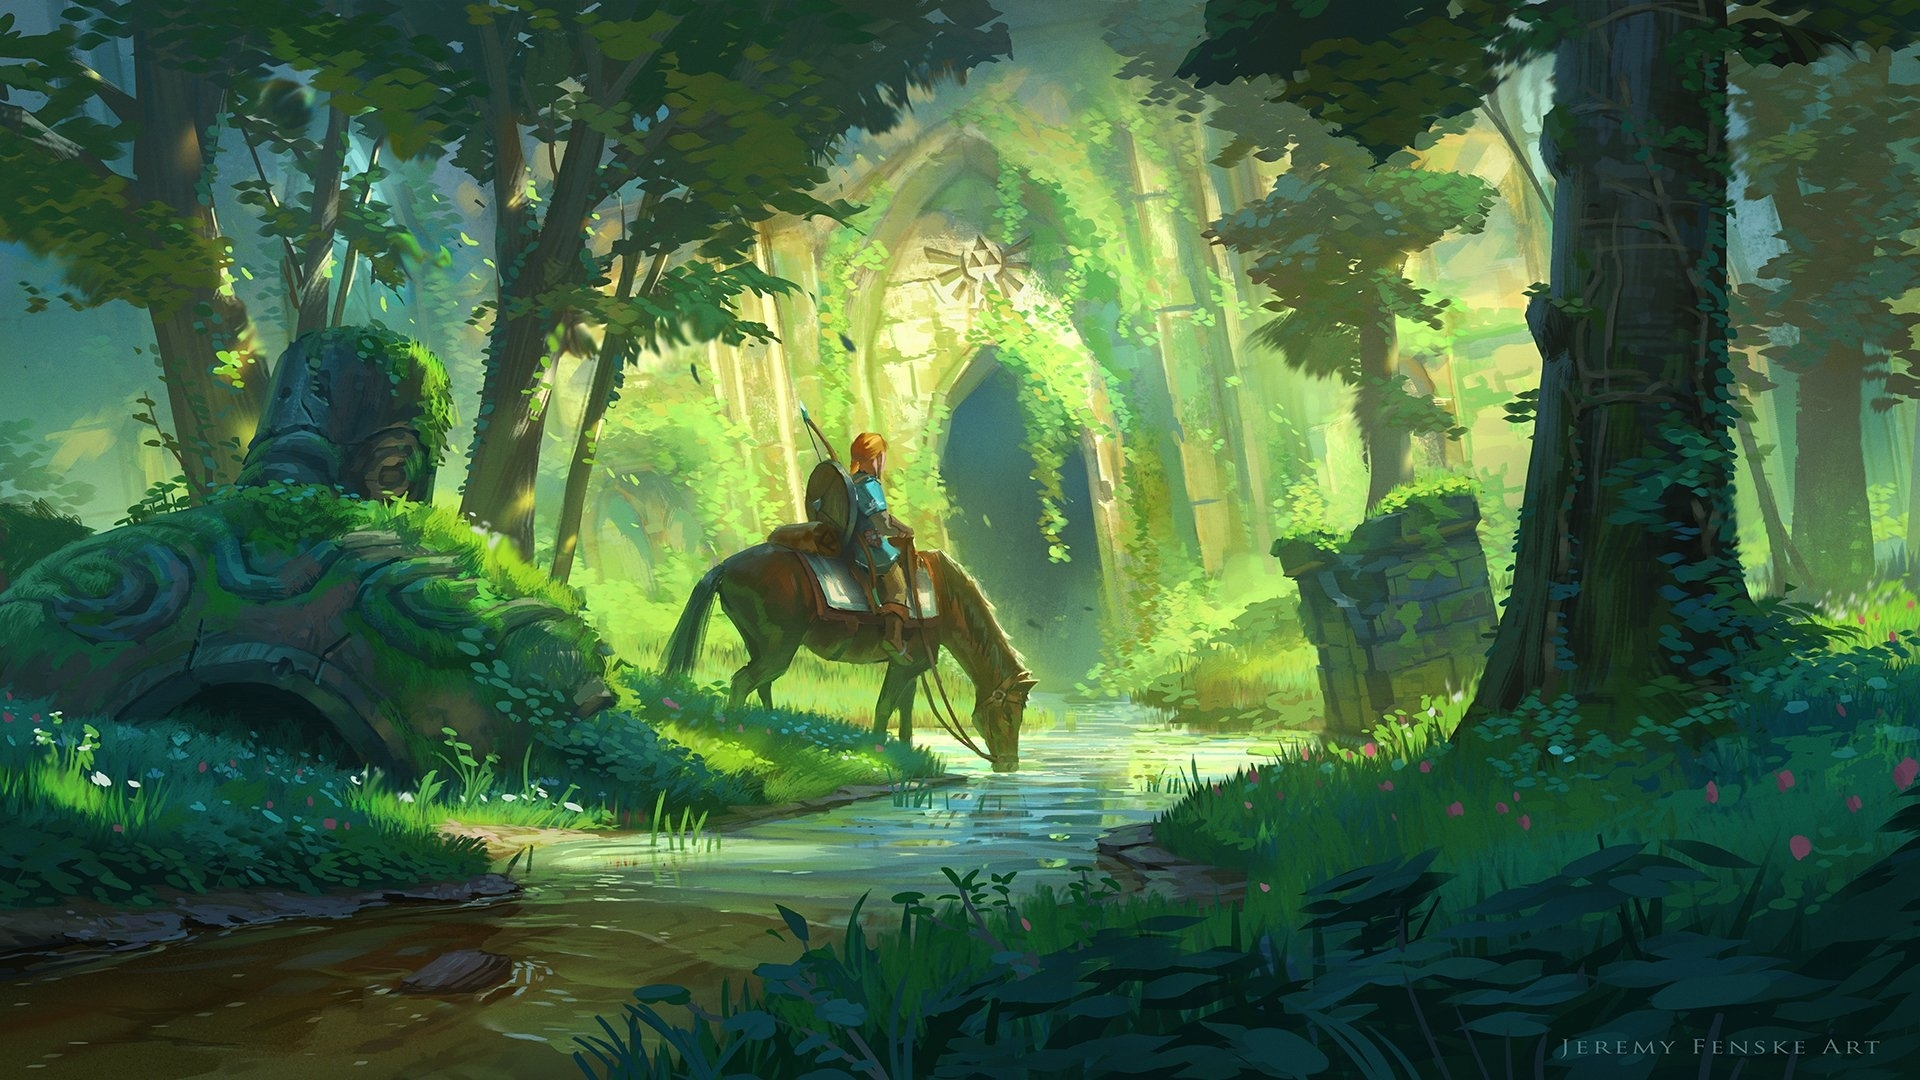 952 zelda hd wallpapers | background images - wallpaper abyss